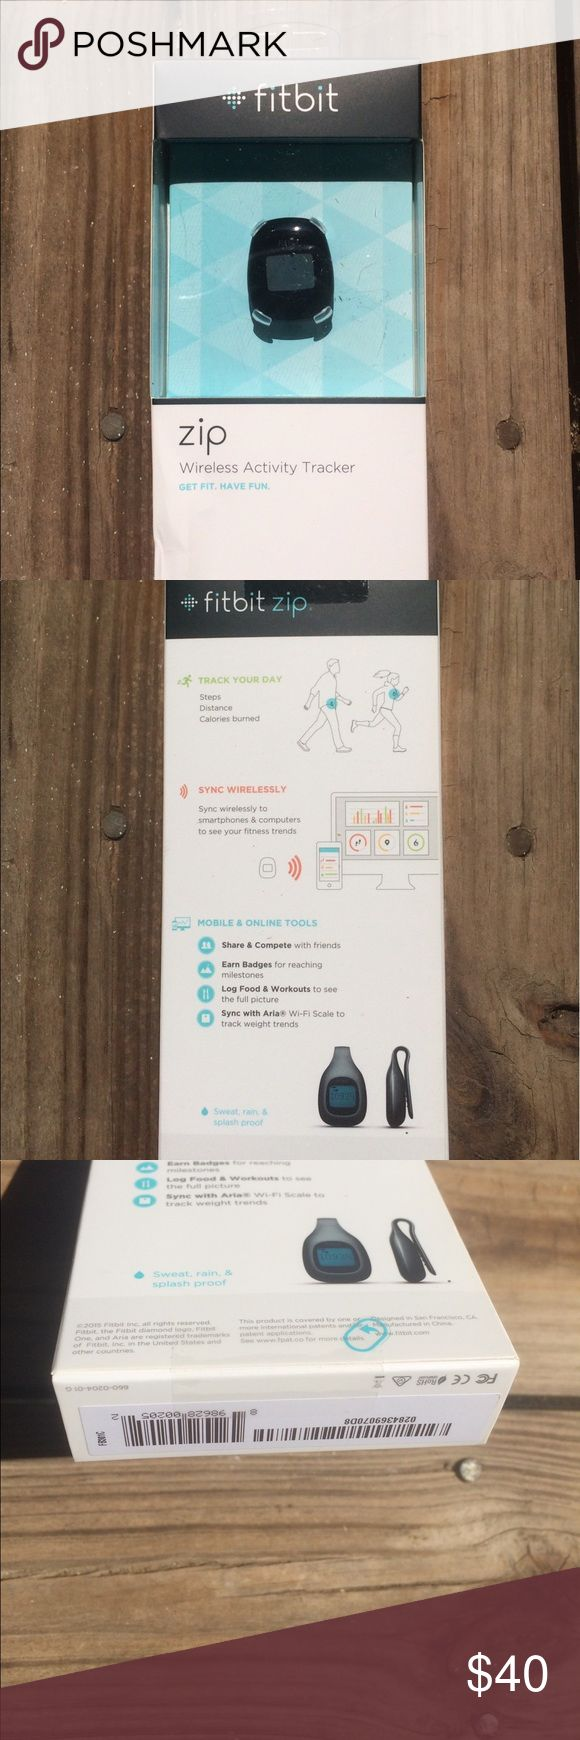 New Fitbit Zip- never opened New Fitbit in package. Activity tracker that syncs wirelessly. Tracks steps, distance and calories burned. Fitbit Zip Other